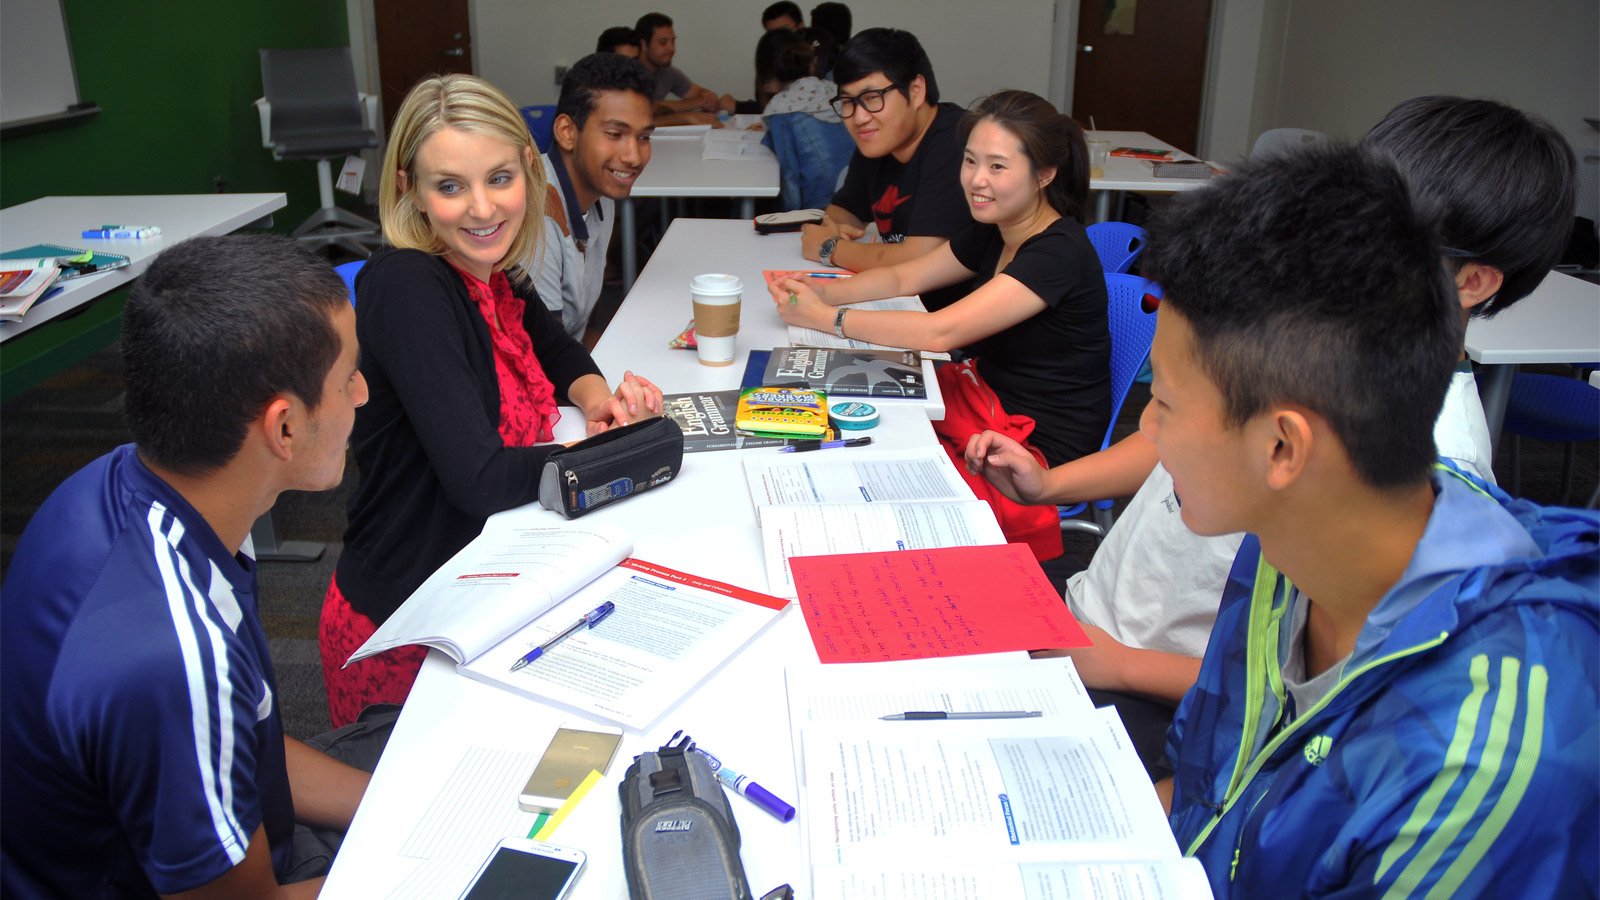 Students meet with a PIESL staff member to improve their English skills. Courtesy photo.